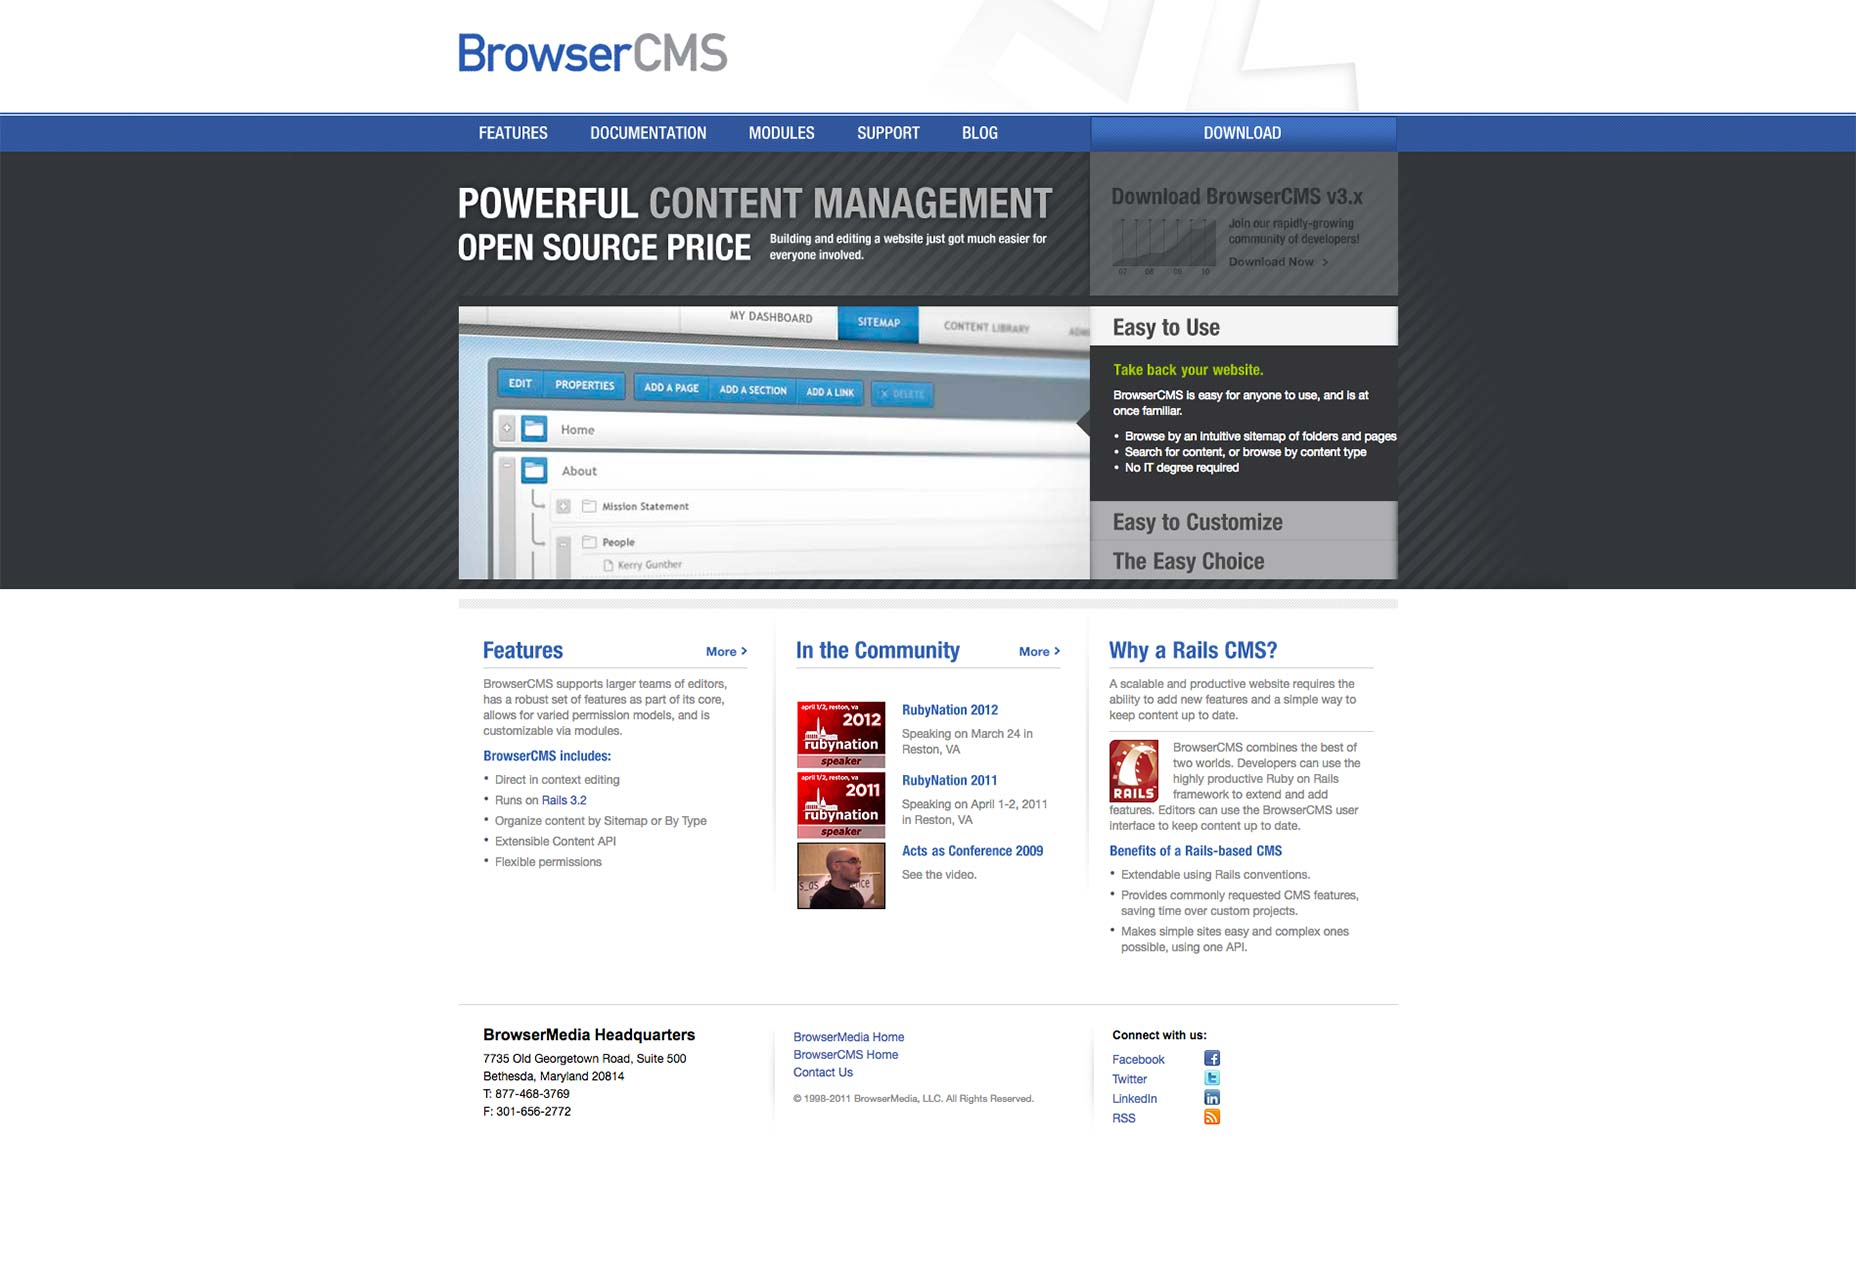 The ultimate guide to CMS, part 2 | Webdesigner Depot